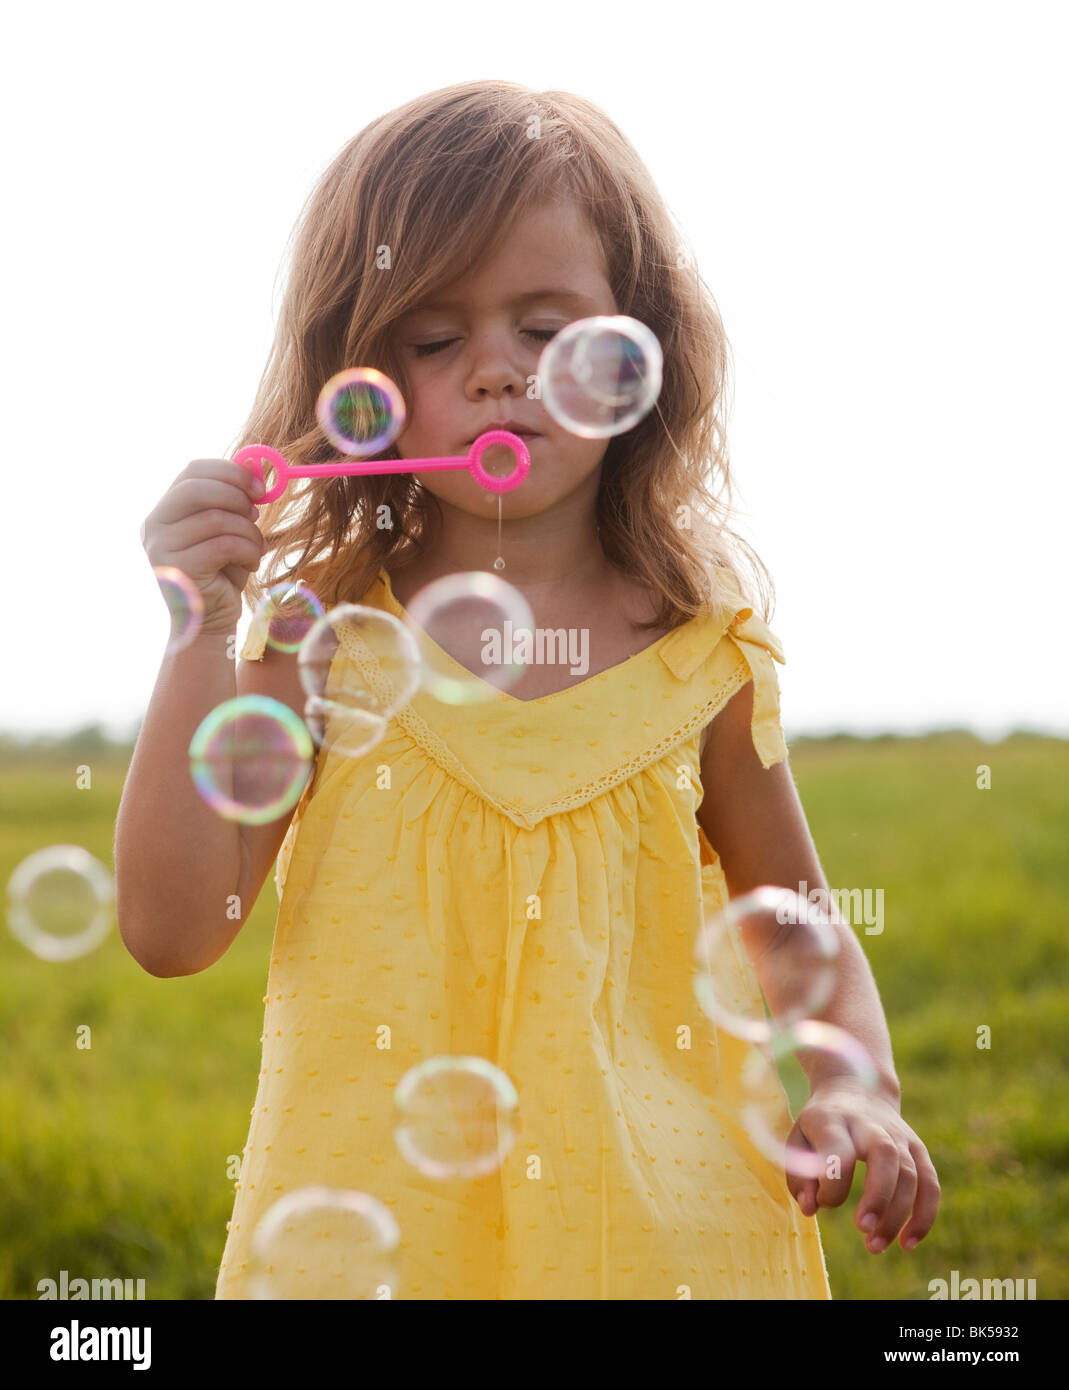 Young girl in yellow sundress blowing bubbles - Stock Image